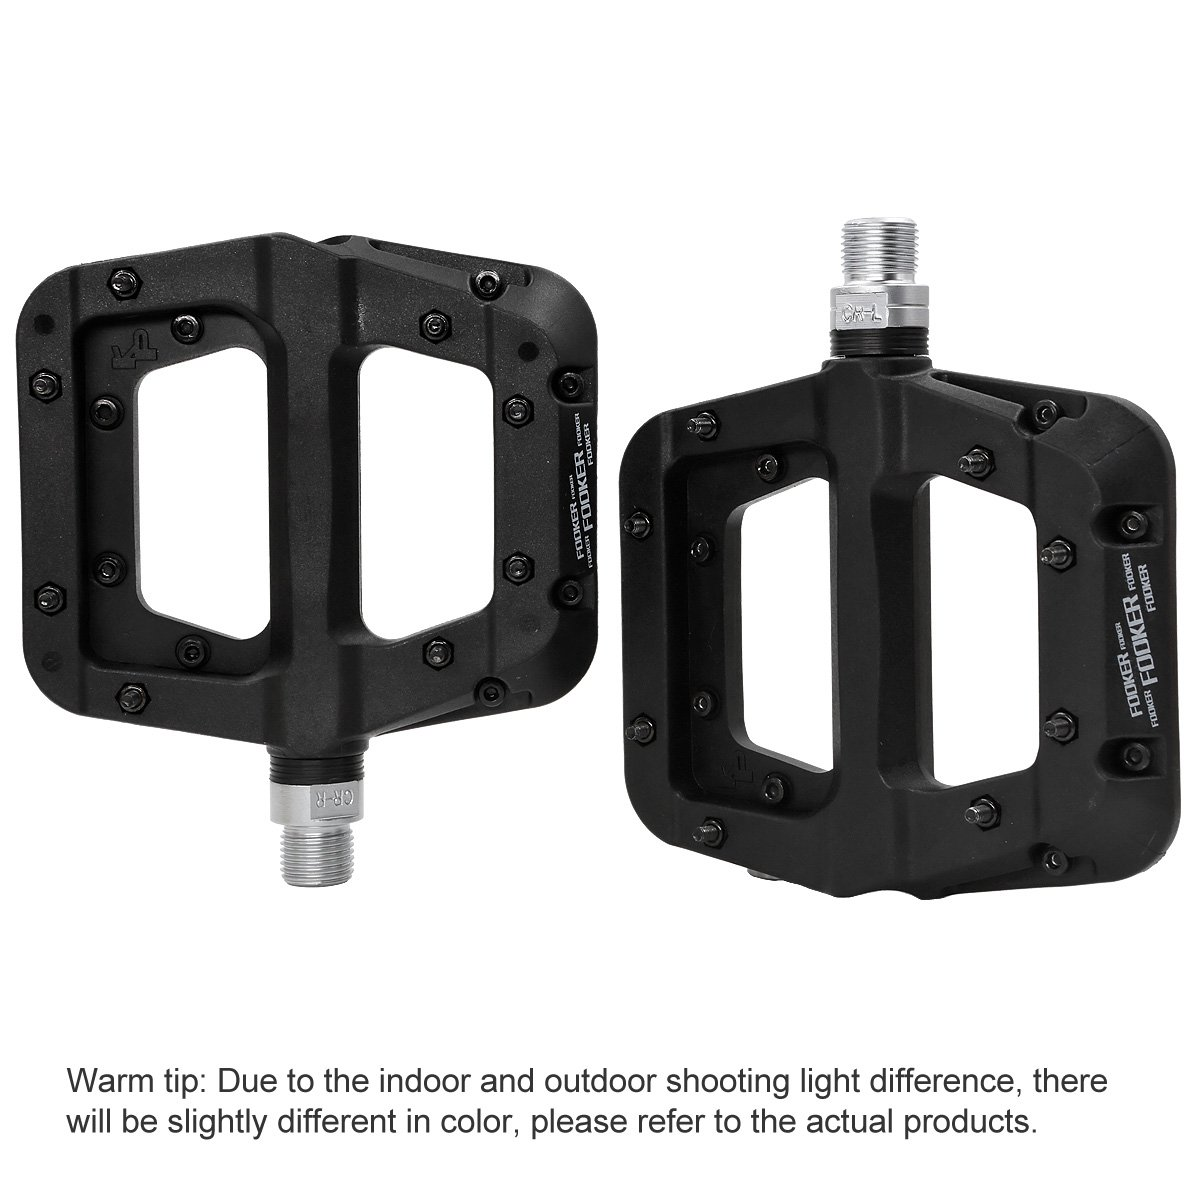 FOOKER MTB Bike Pedal Nylon 3 Bearing Composite 9//16 Mountain Bike Pedals High-Strength Non-Slip Bicycle Pedals Surface for Road BMX MTB Fixie Bikesflat Bike